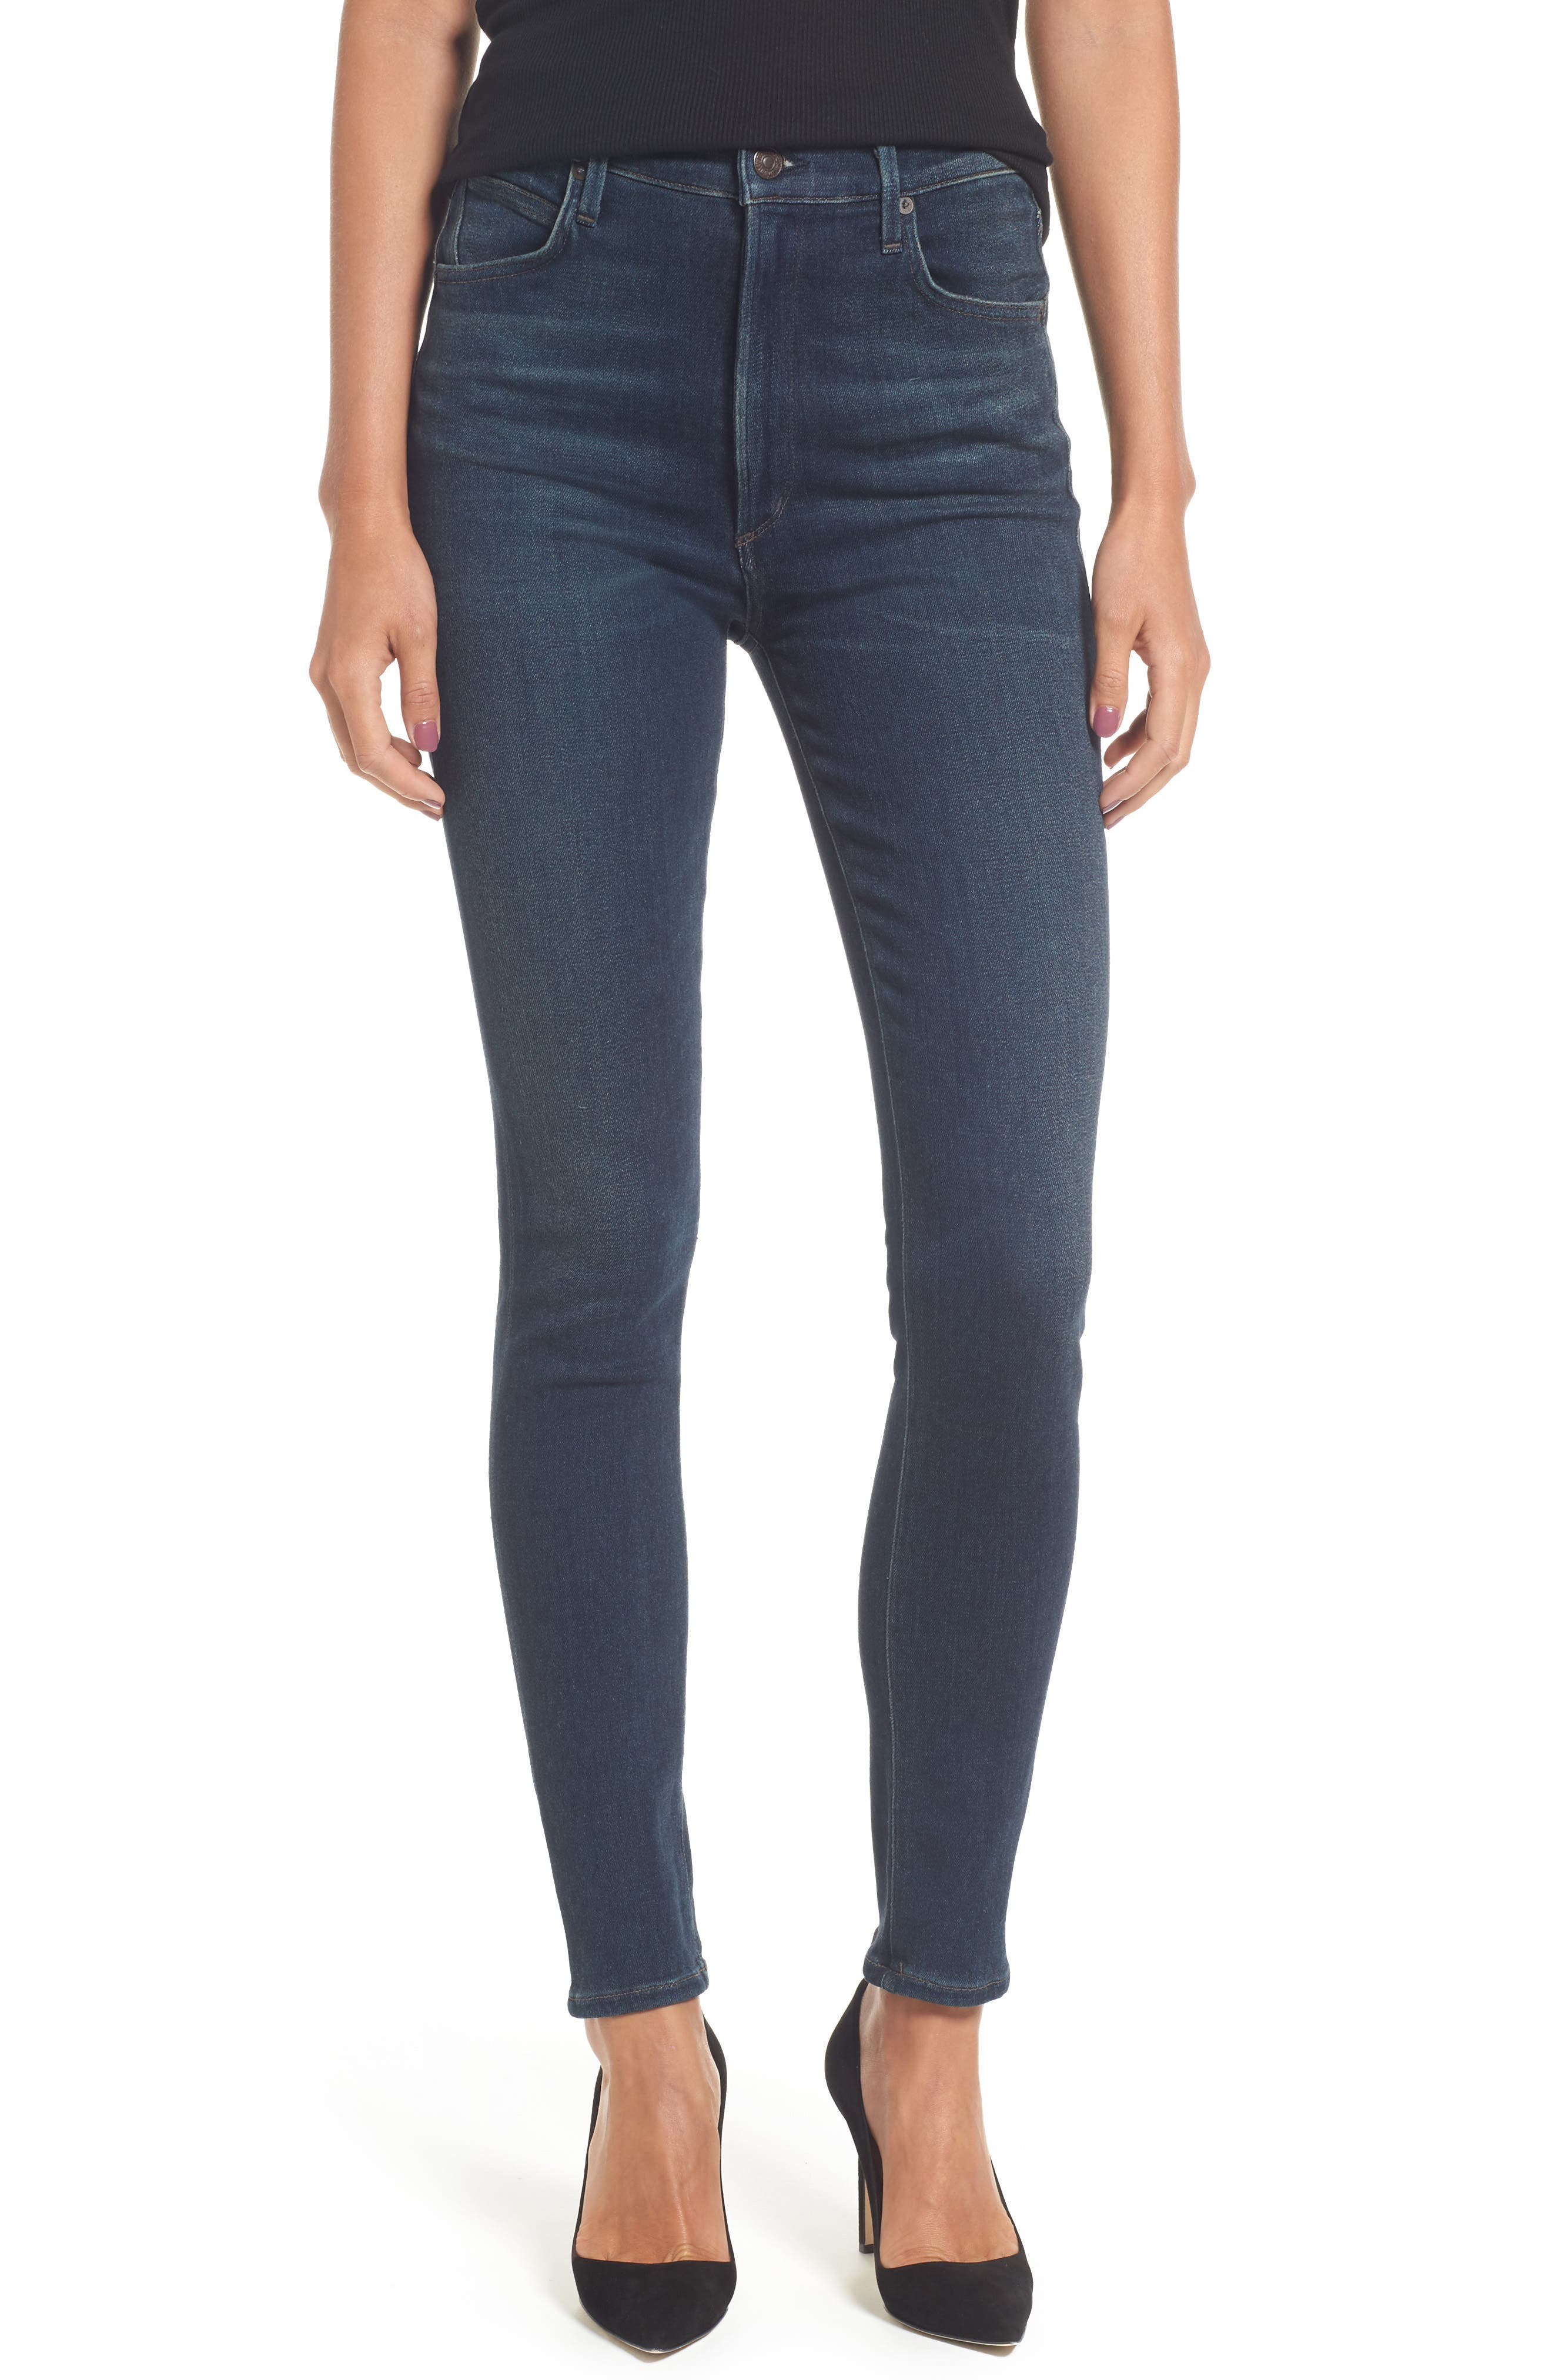 Chrissy High Waist Skinny Jeans,                         Main,                         color, 405